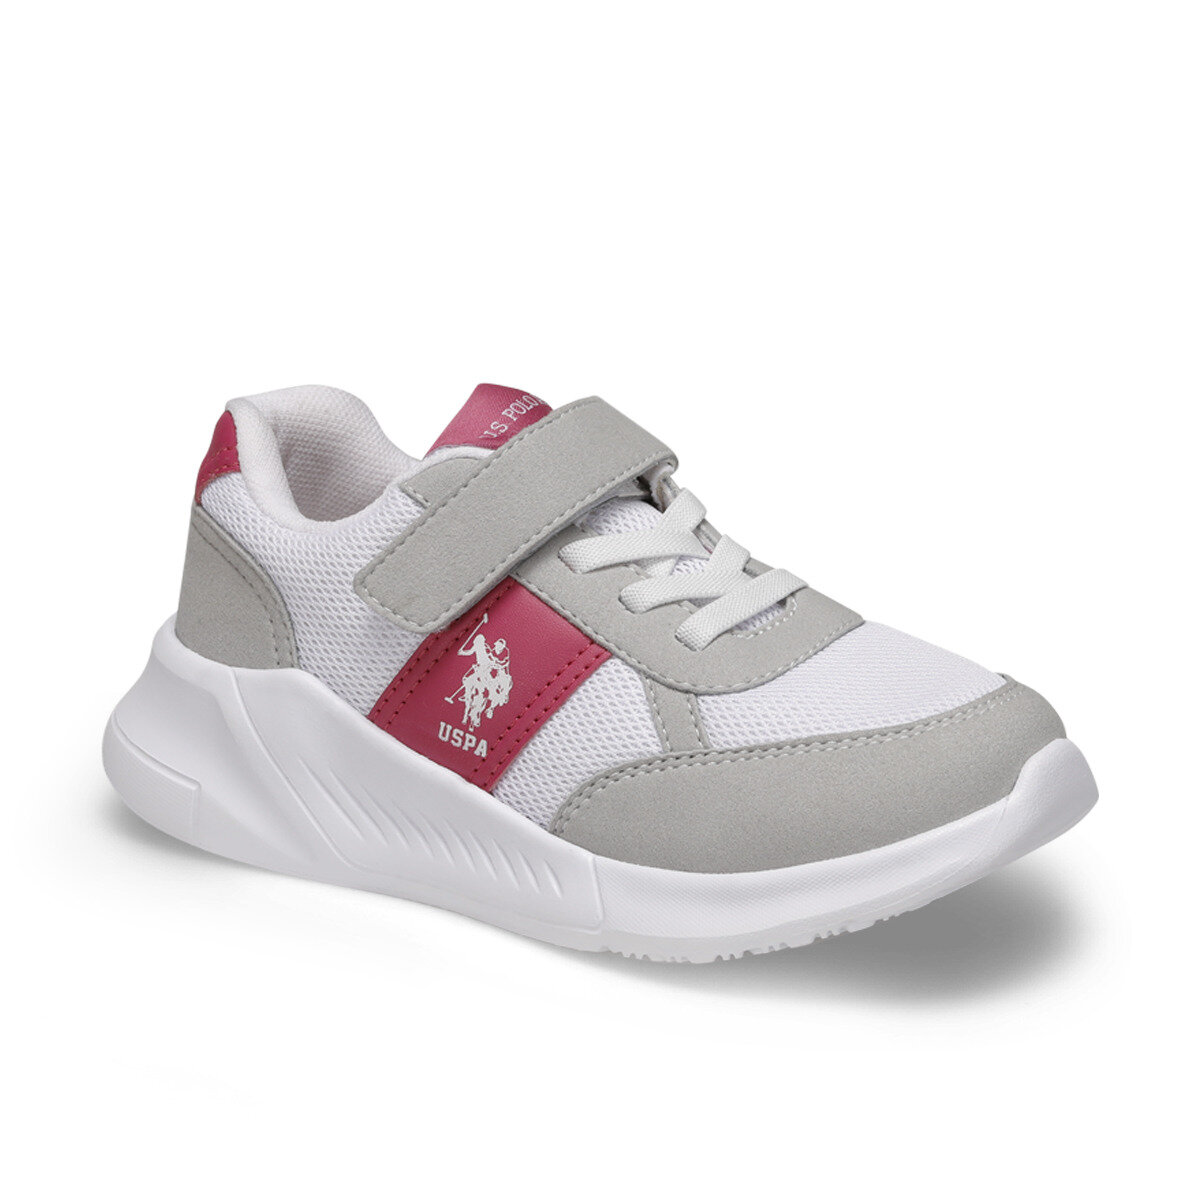 FLO IMPISH White Female Child Sneaker Shoes U.S. POLO ASSN.